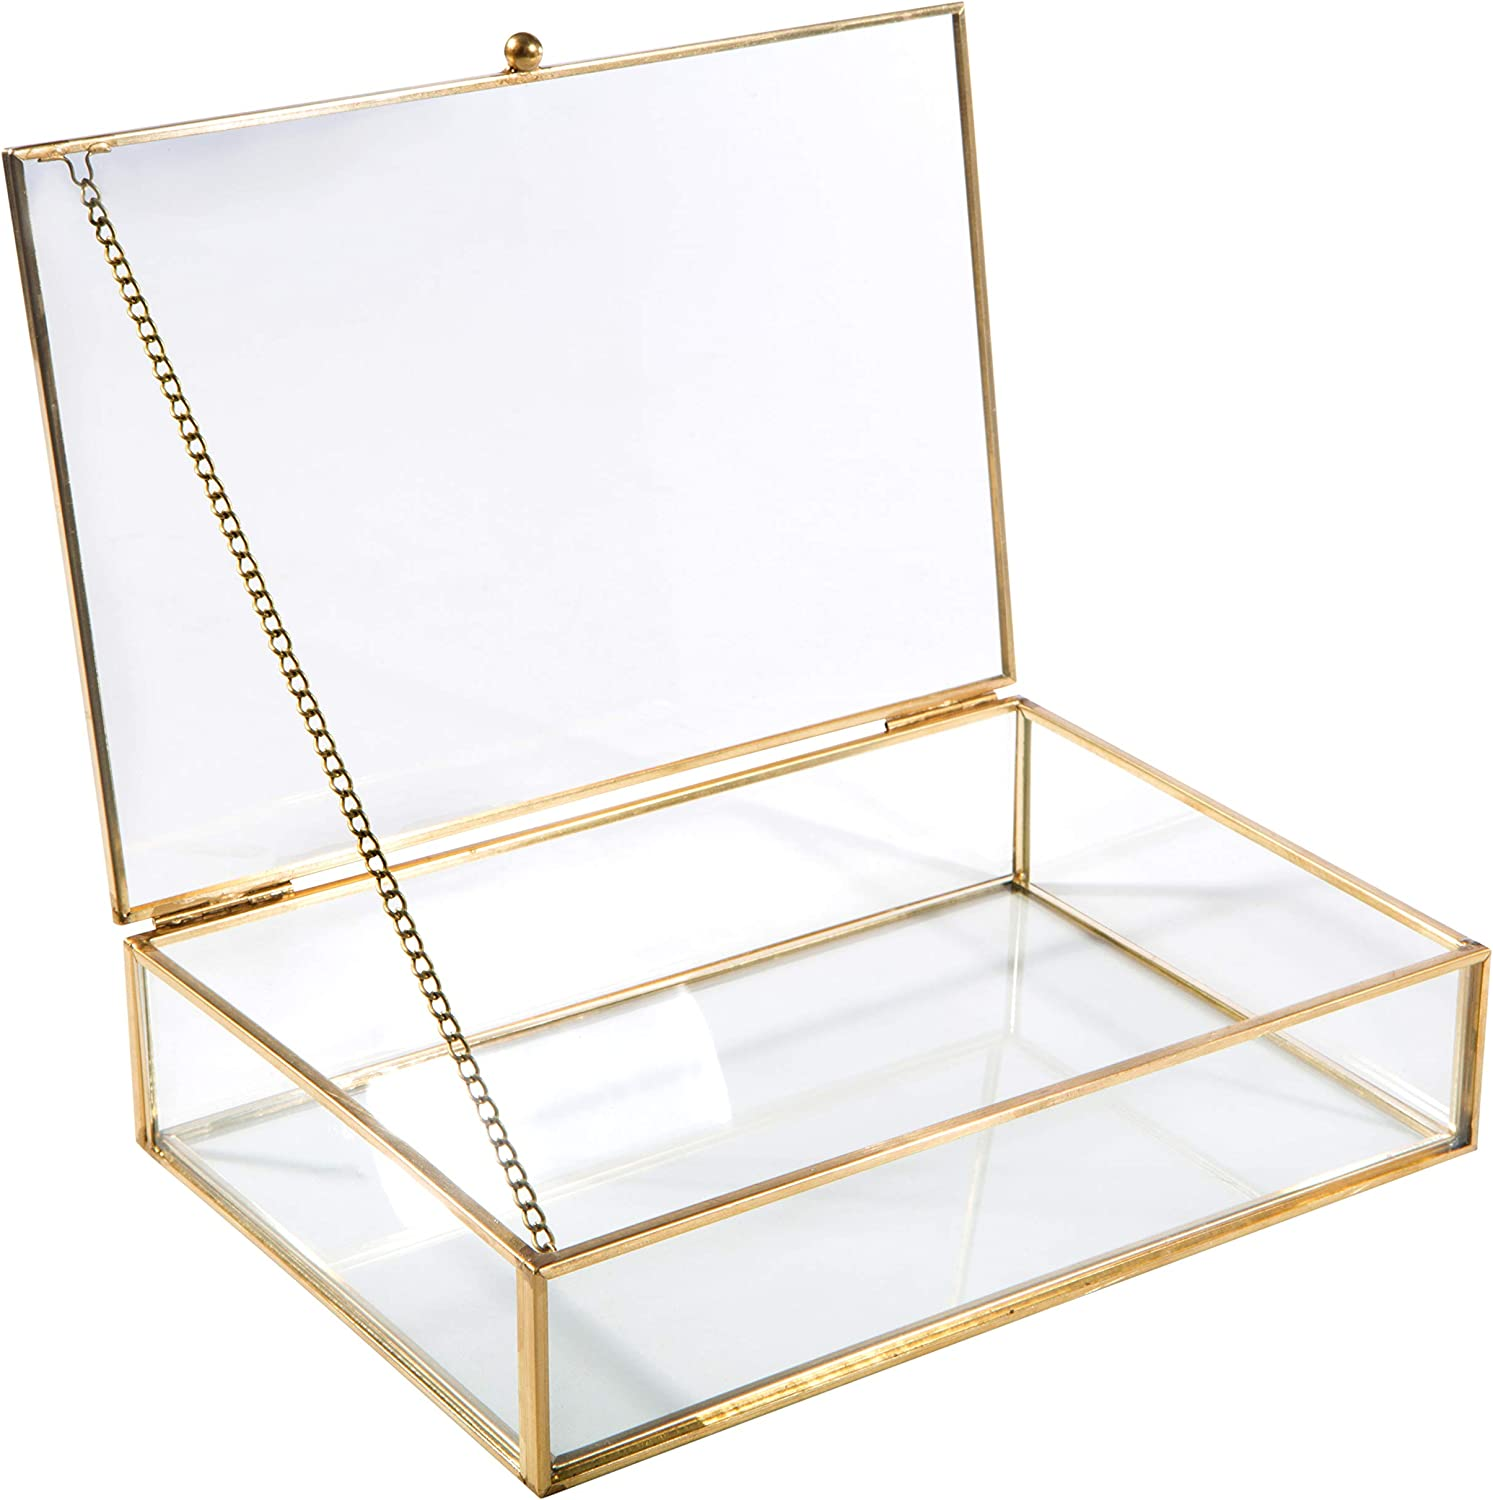 Home Details Vintage Mirrored Bottom Glass Keepsake Box Jewelry Organizer Decorative Accent Vanity Wedding Bridal Party Gift Candy Table Décor Jars Boxes Gold Home Kitchen